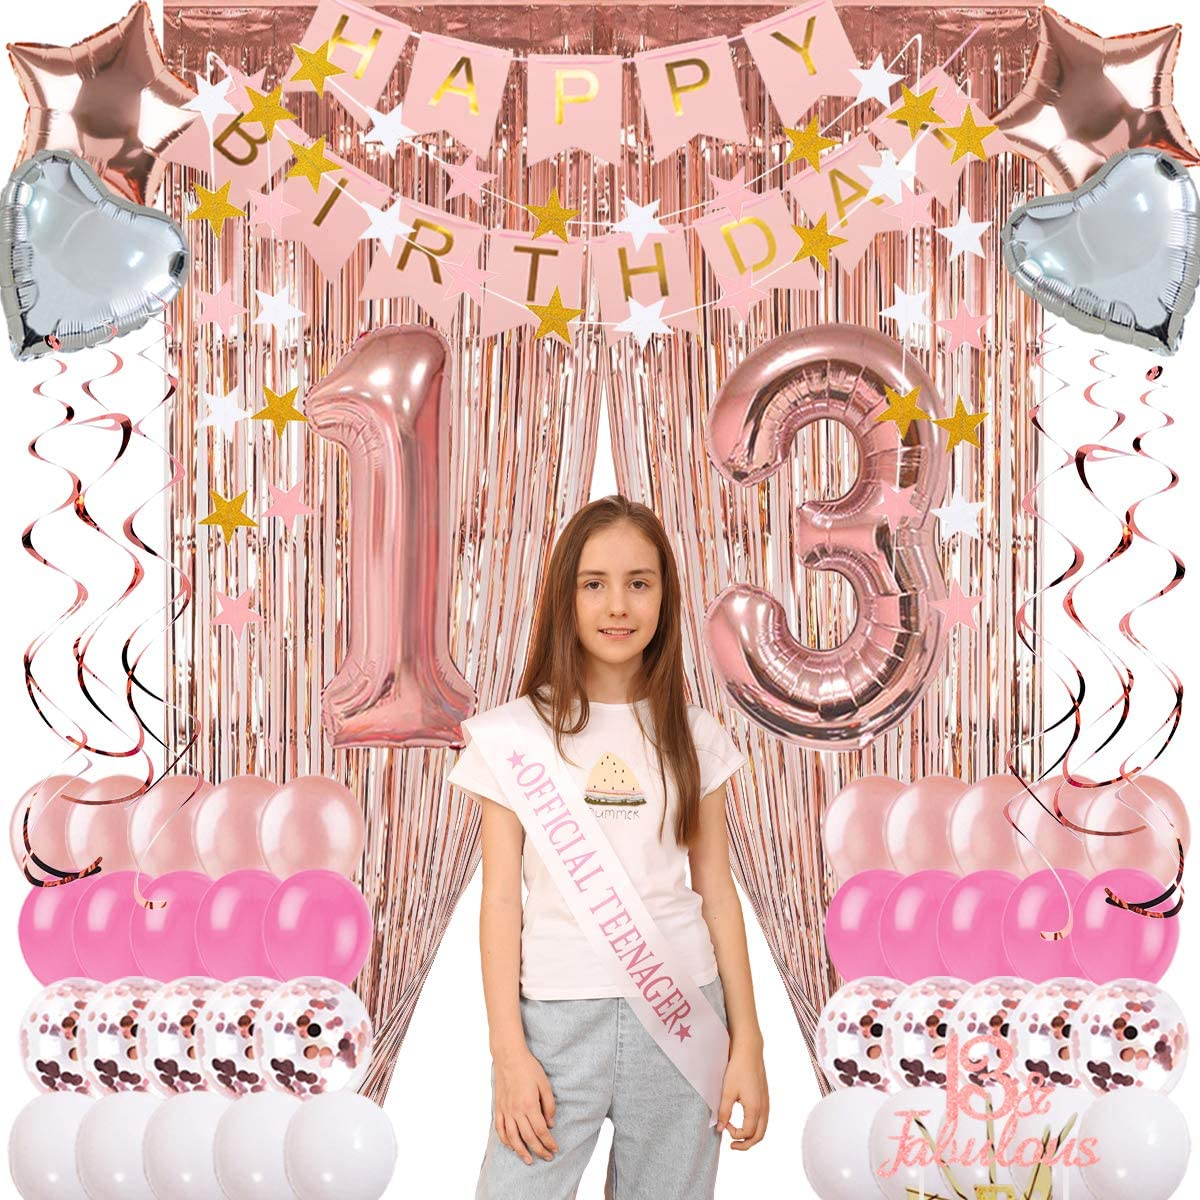 13th Birthday Decorations for Girls Rose Gold, 13th Party Supplies Pink, 13th Birthday Cake Topper and Sash, 13 Balloons Numbers Rose Gold Pink and White Balloons, Hanging Swirl Foil Fringle Curtain